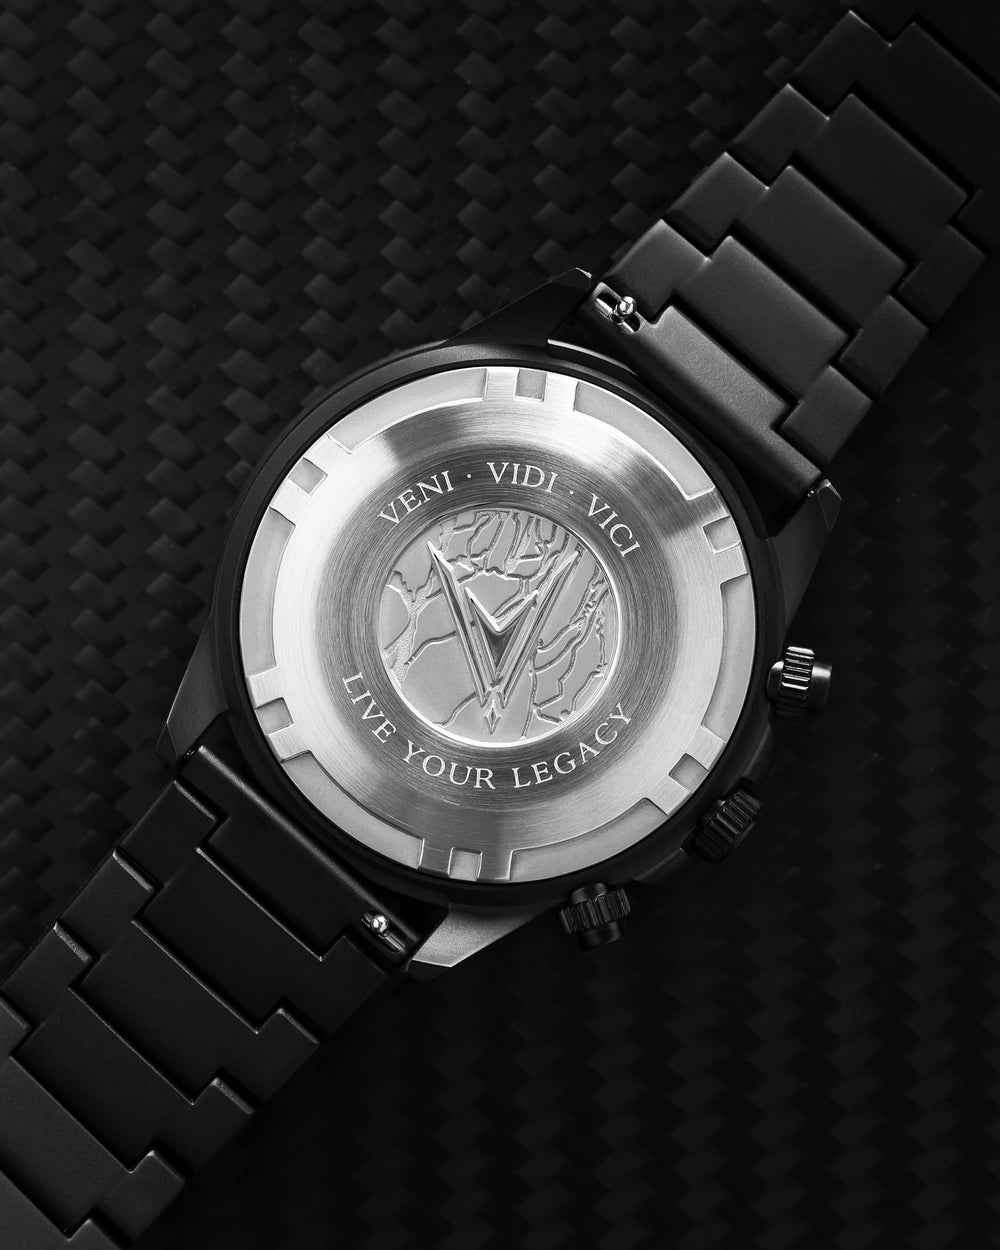 Apex 316L Stainless Steel Caseback with Veni Vidi Vici Live Your Legacy Engraving